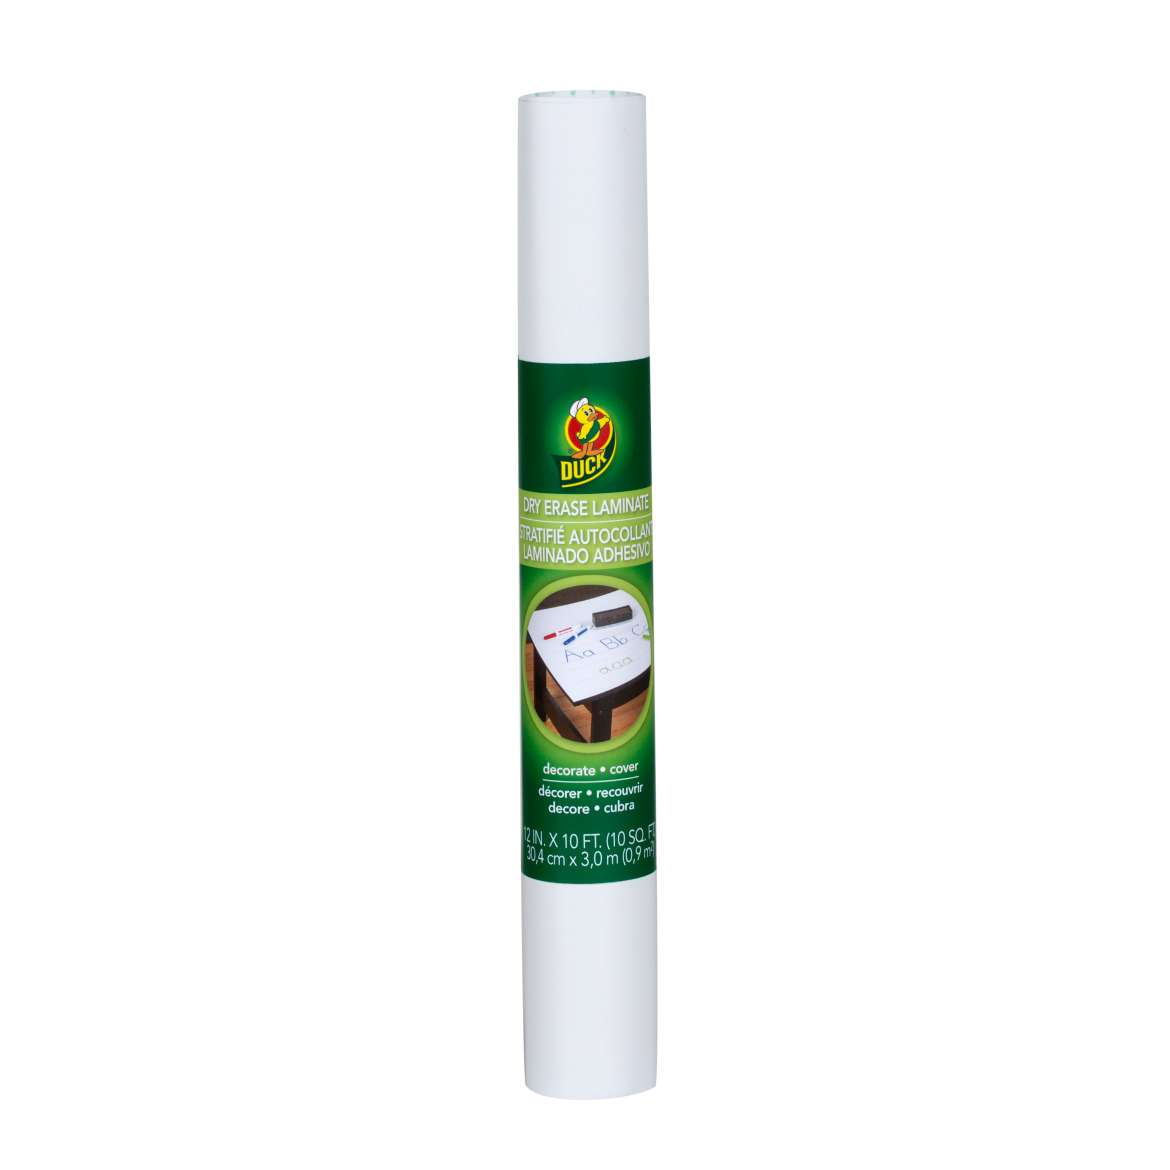 Duck® Brand Deco Adhesive Laminate - Dry Erase, 12 in. x 10 ft. Image